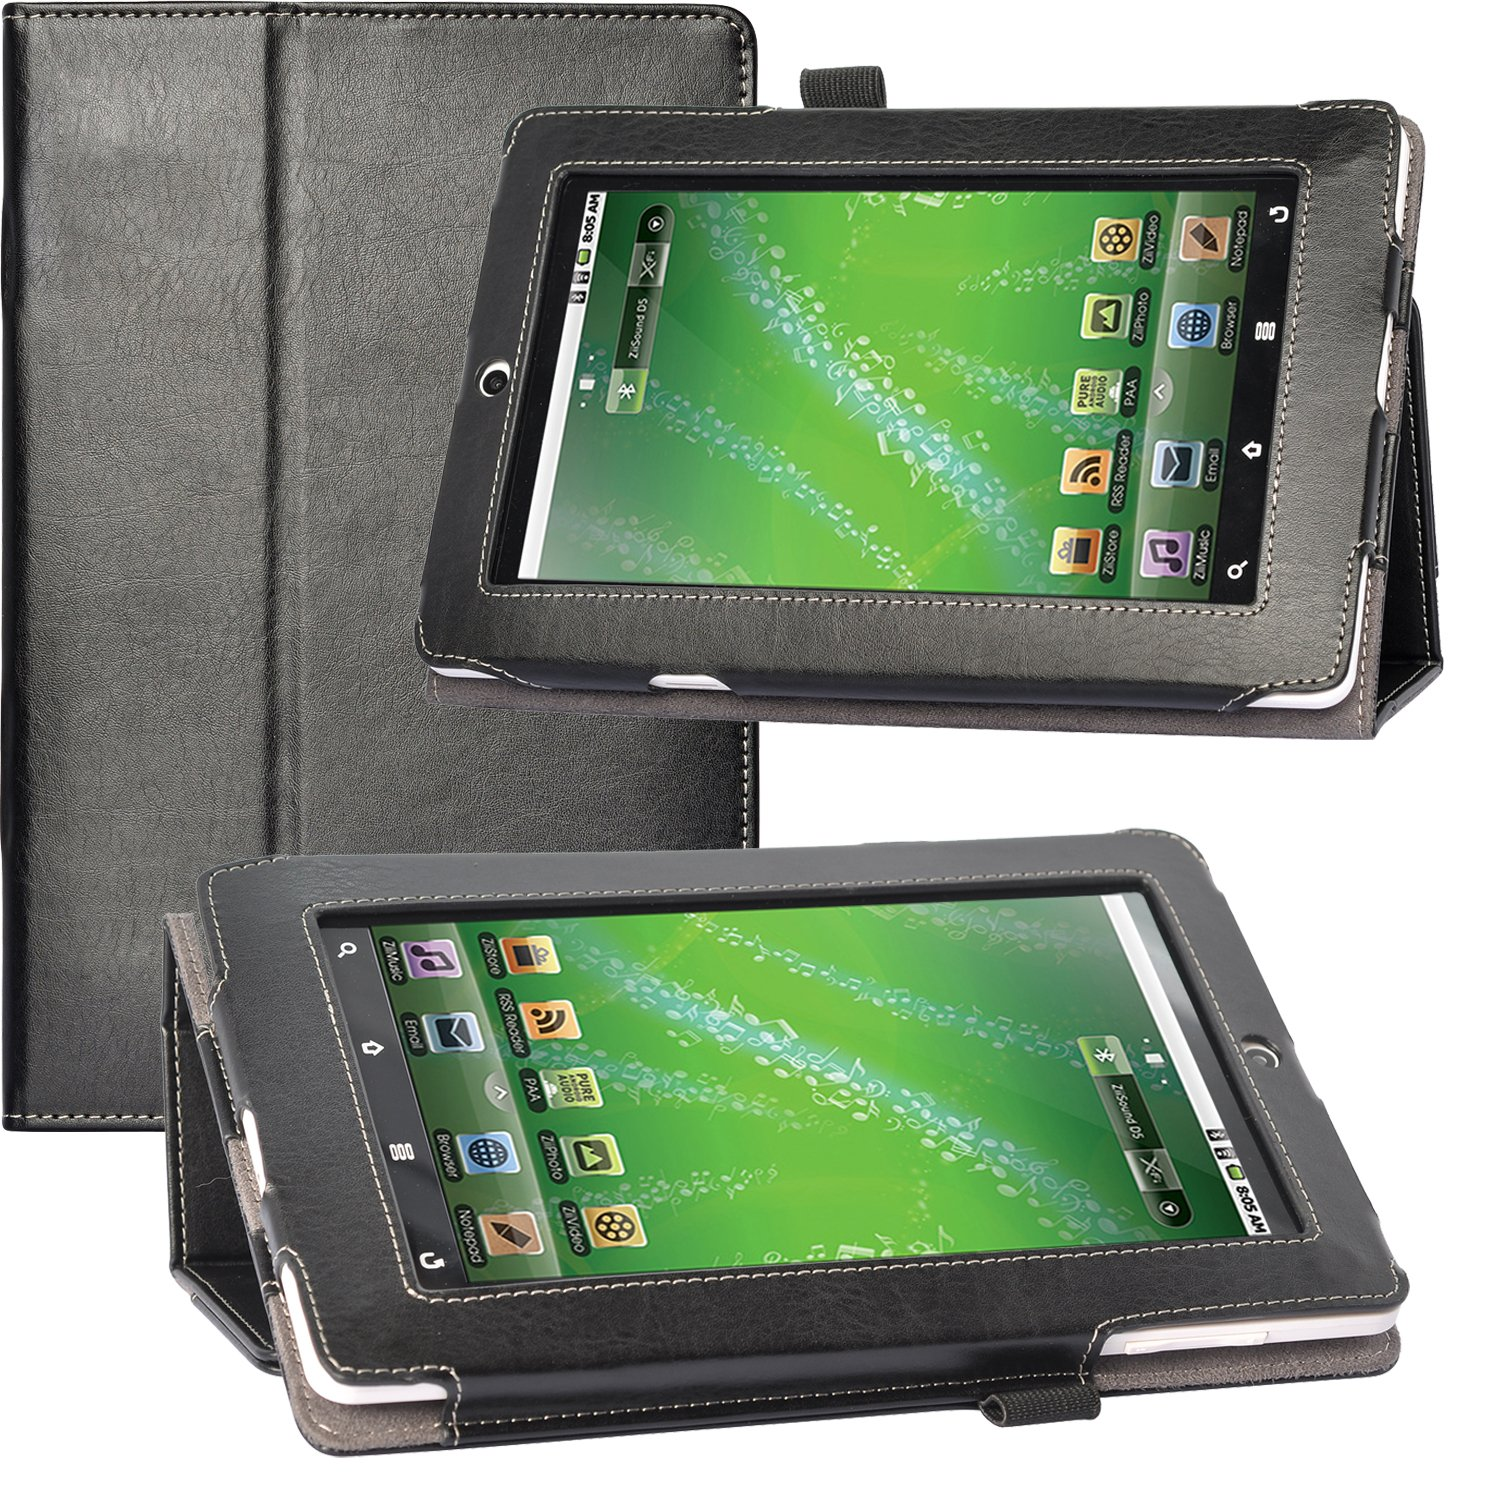 Poetic Slimbook Case for the Creative ZiiO 7-Inch Tablet Black(Included 2 Micro SD Card Slots) (Business Card Holder is Plus) (3 Year Manufacturer Warranty From Poetic) Krava Inc Slimbook-CreativeZiiO-Black